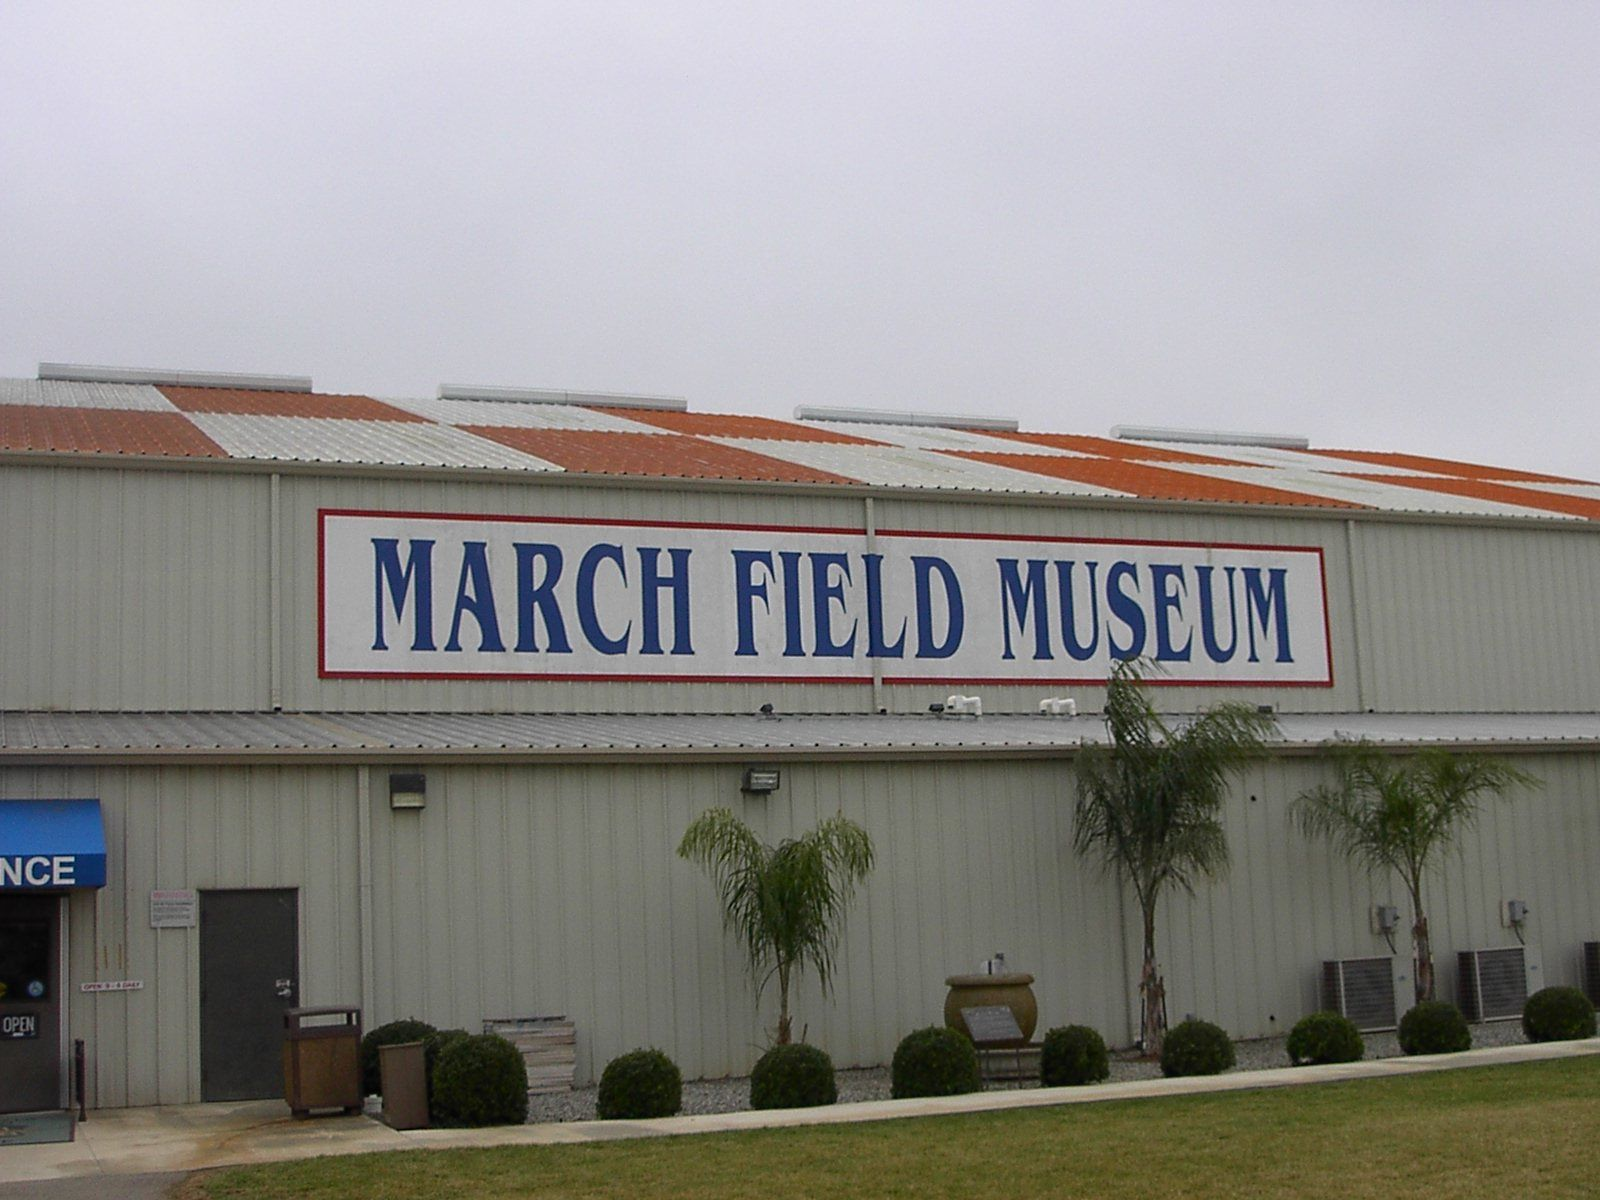 March Field Museum, March AFB, Moreno Valley, CA Field